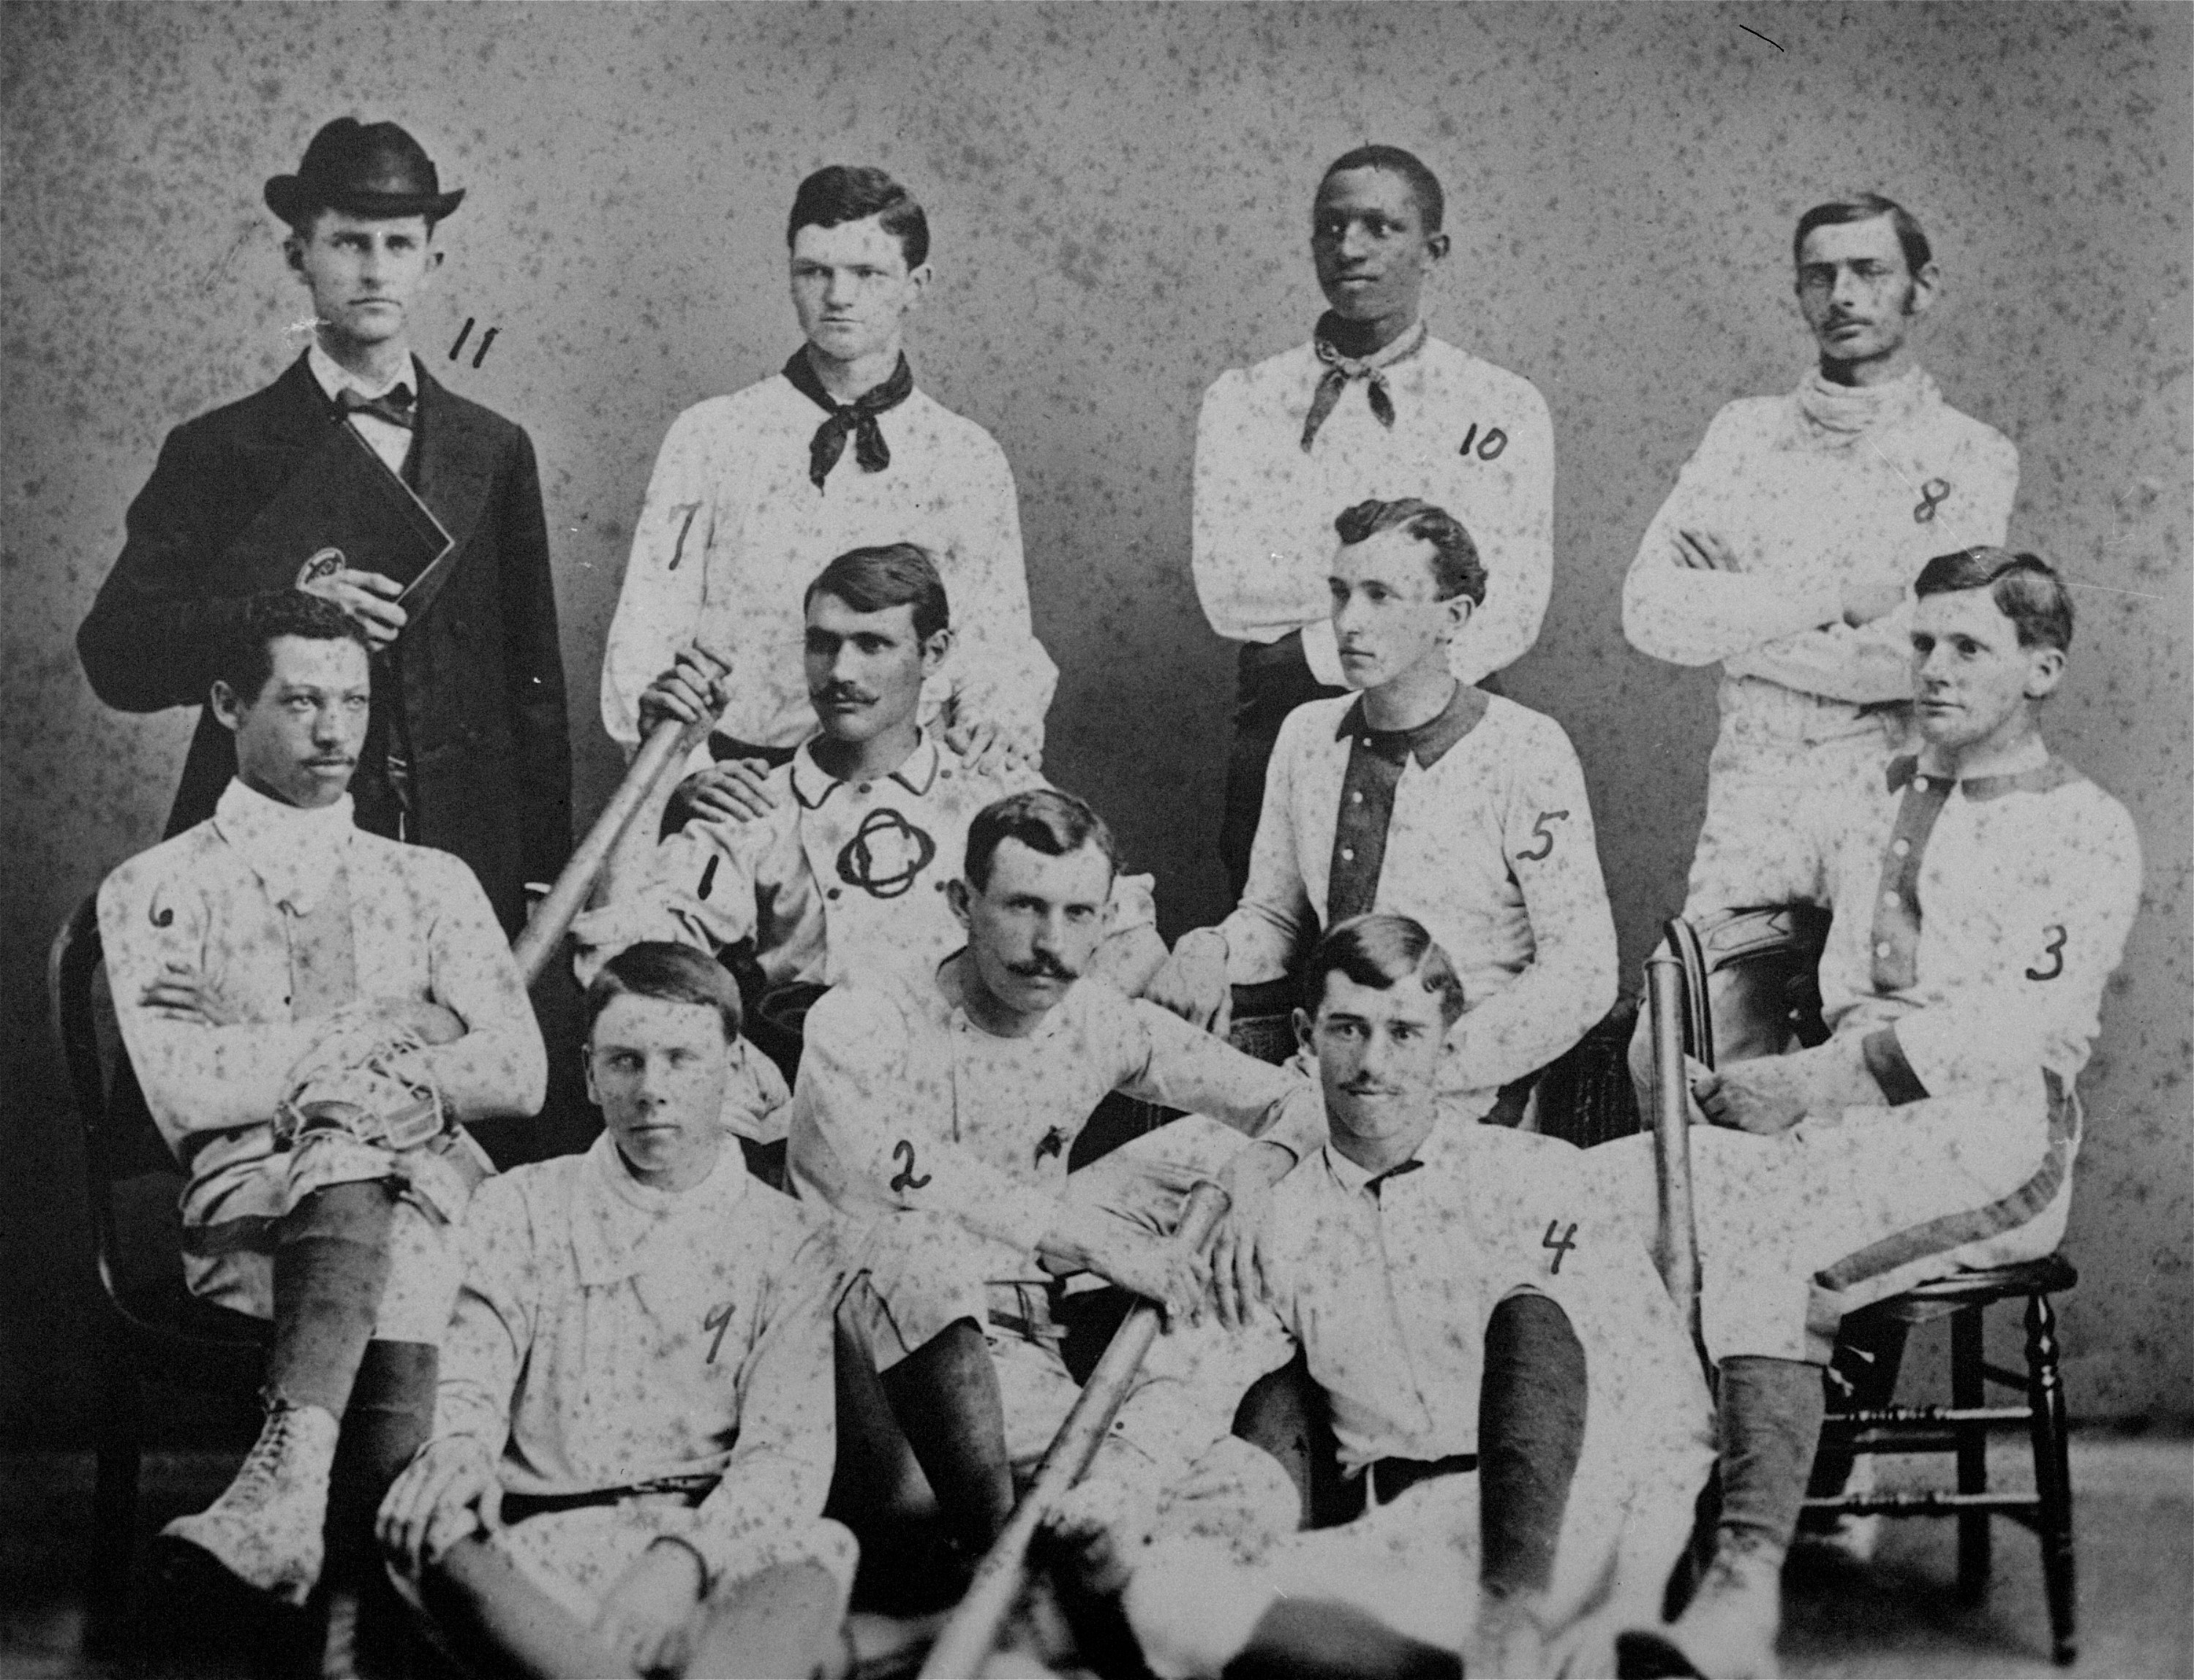 Moses Fleetwood Walker gets overdue recognition from state ...